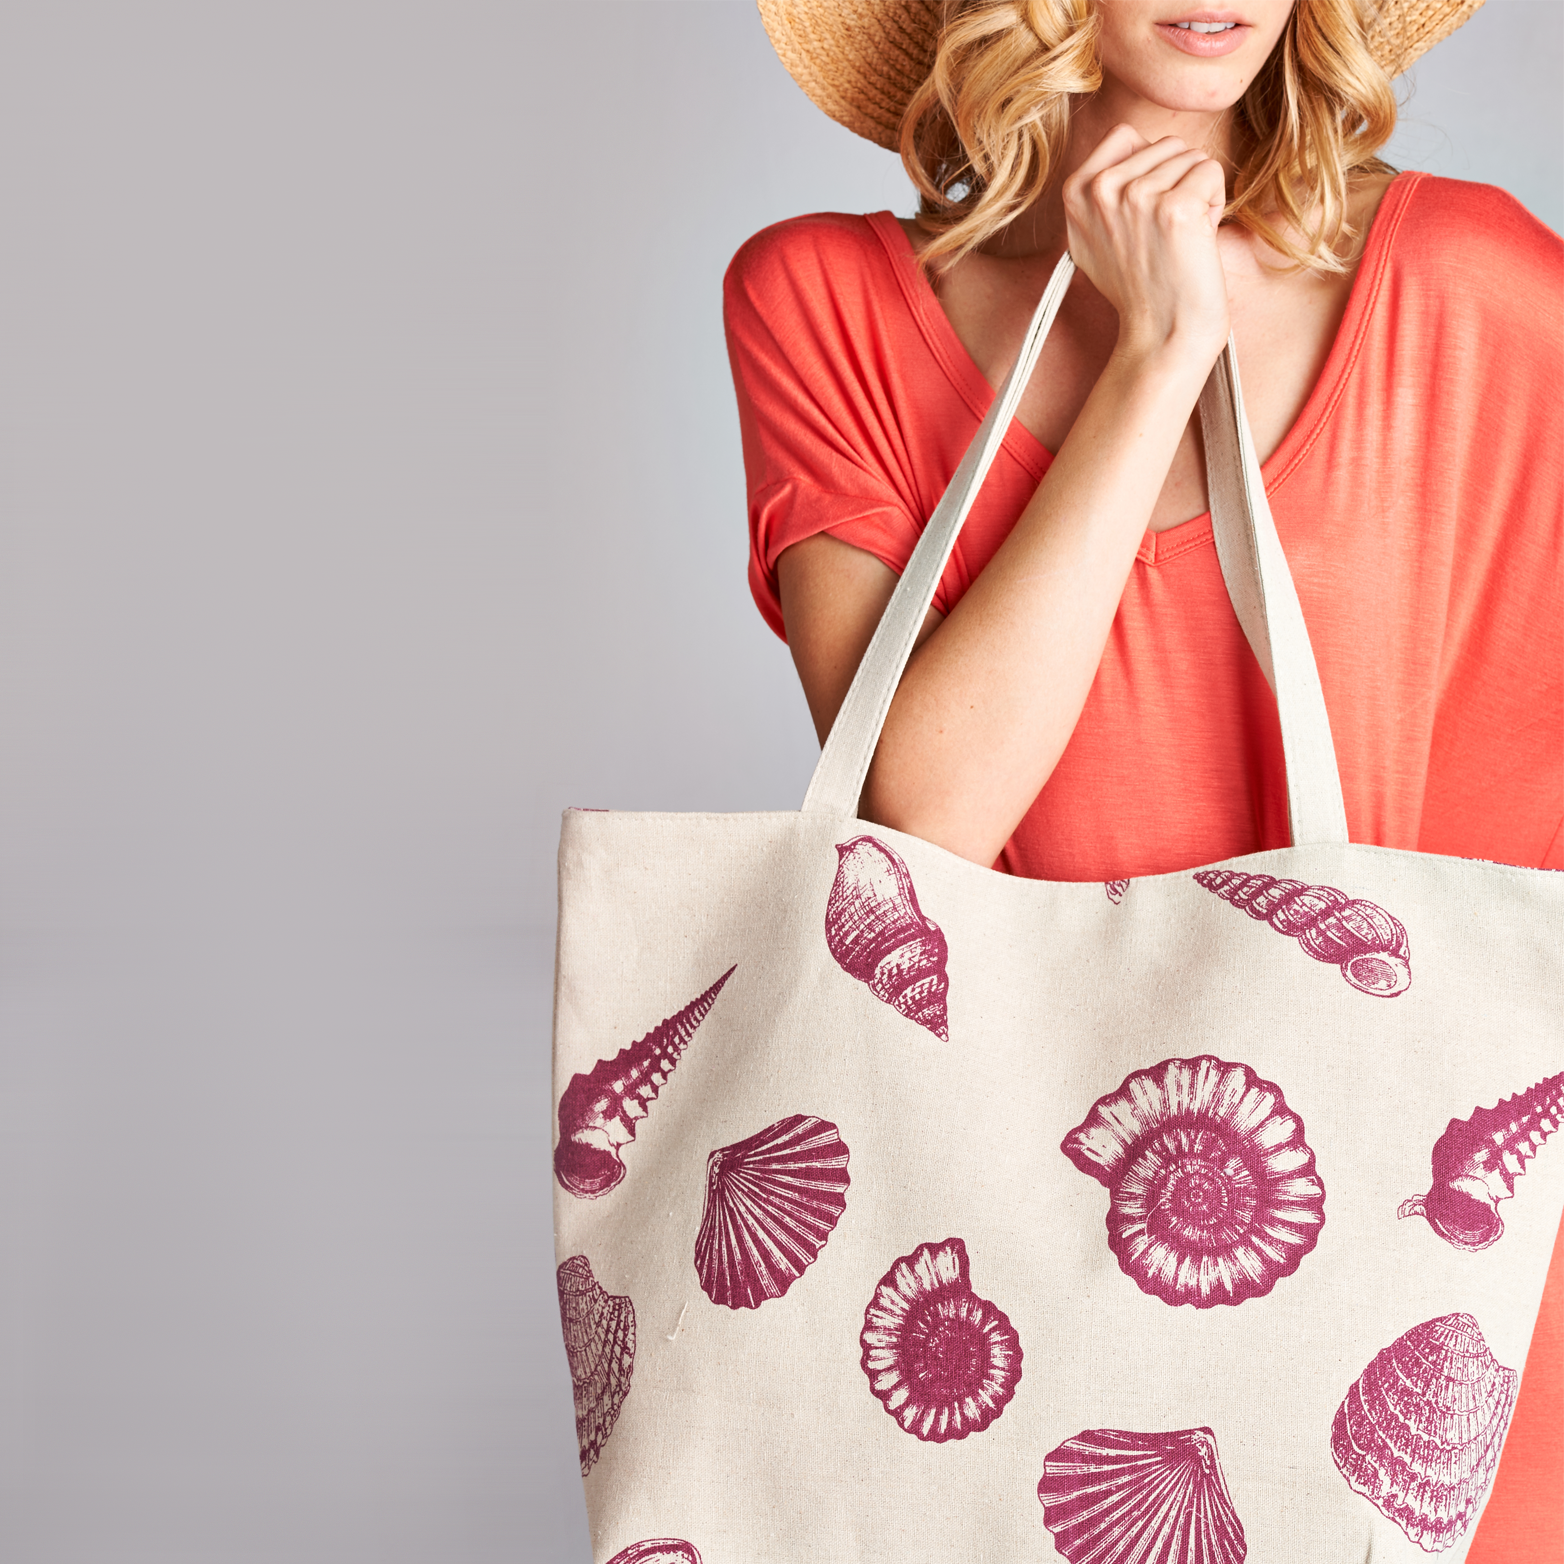 Sally's Seashell Day Bag